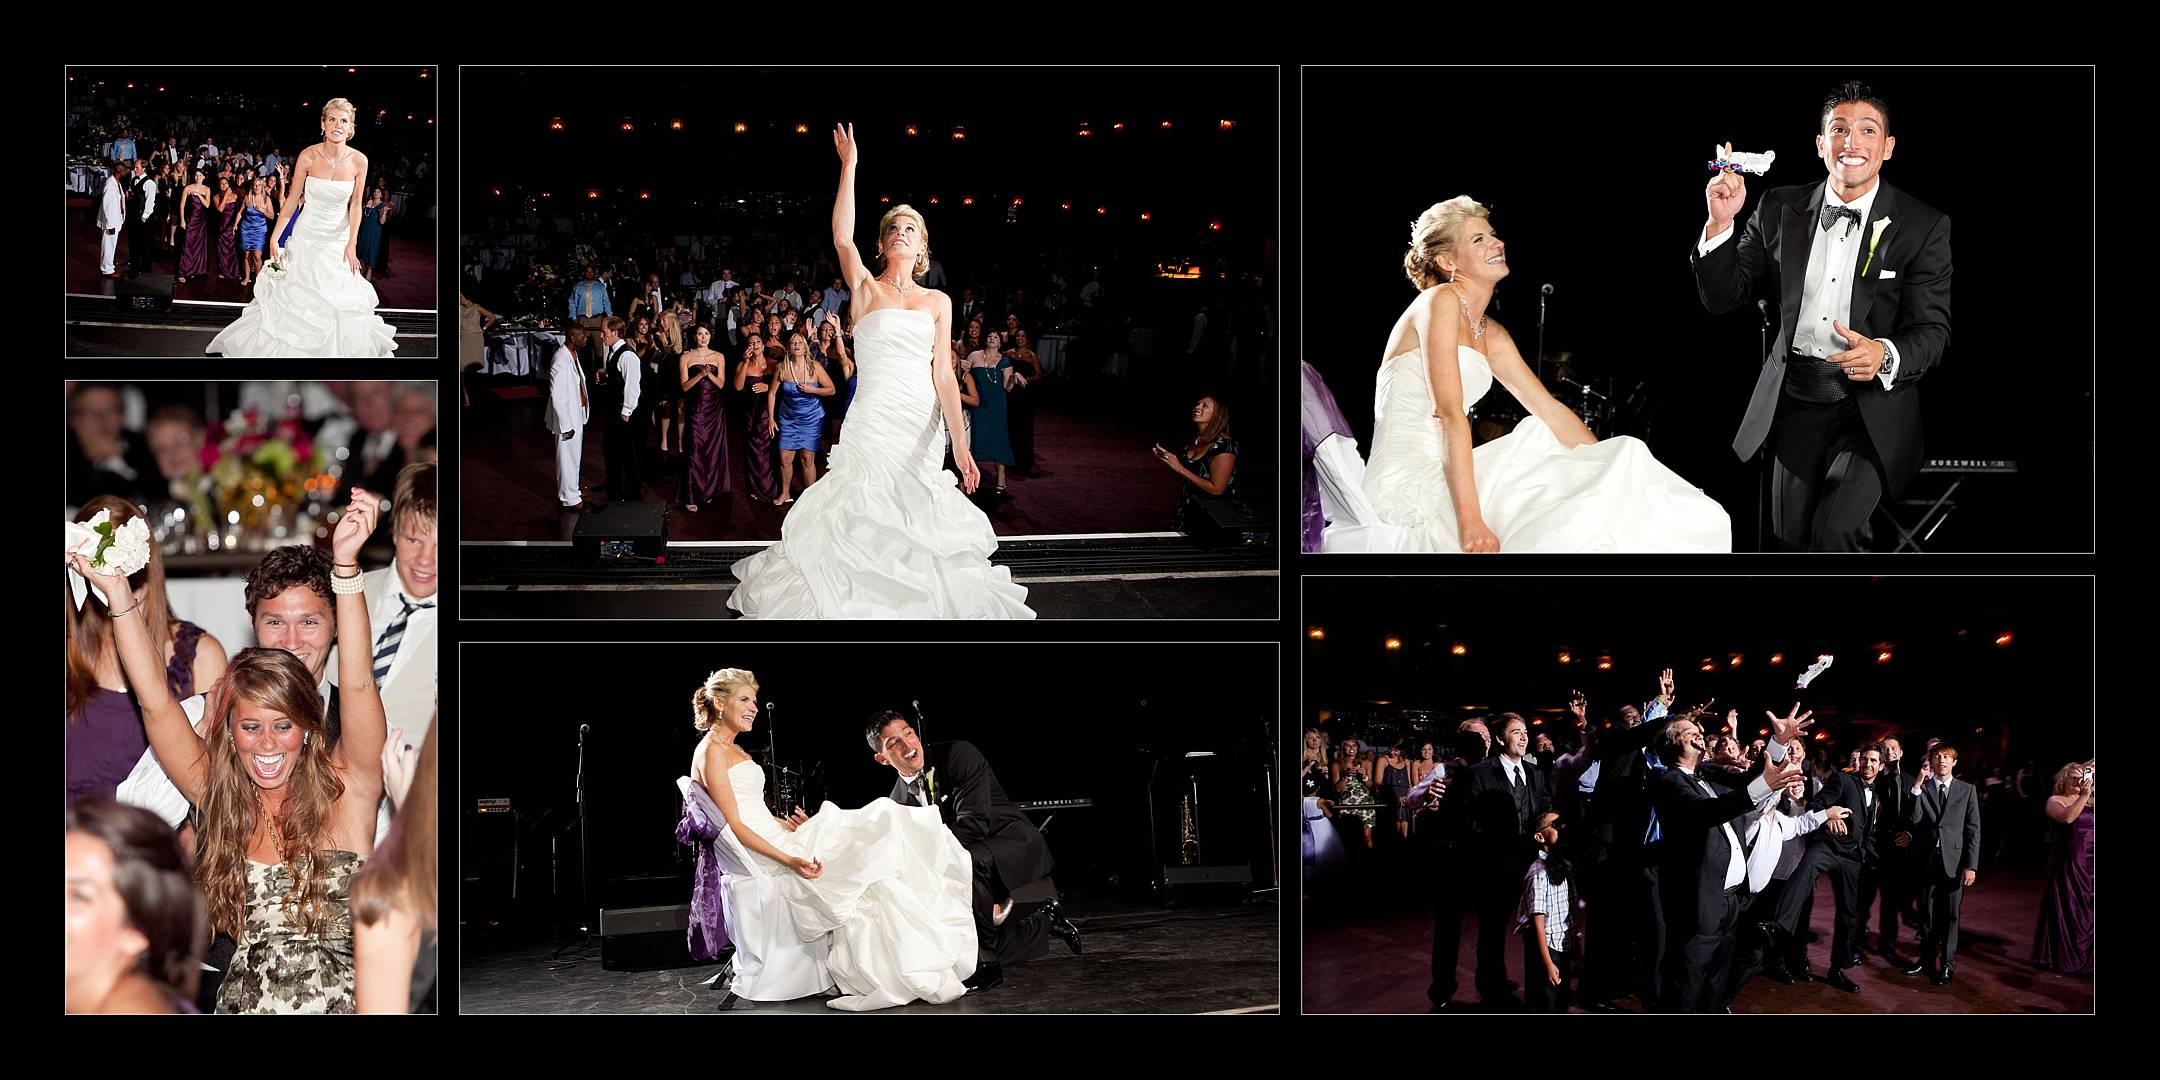 schmidt-photo-wedding-photography-chicago_2311